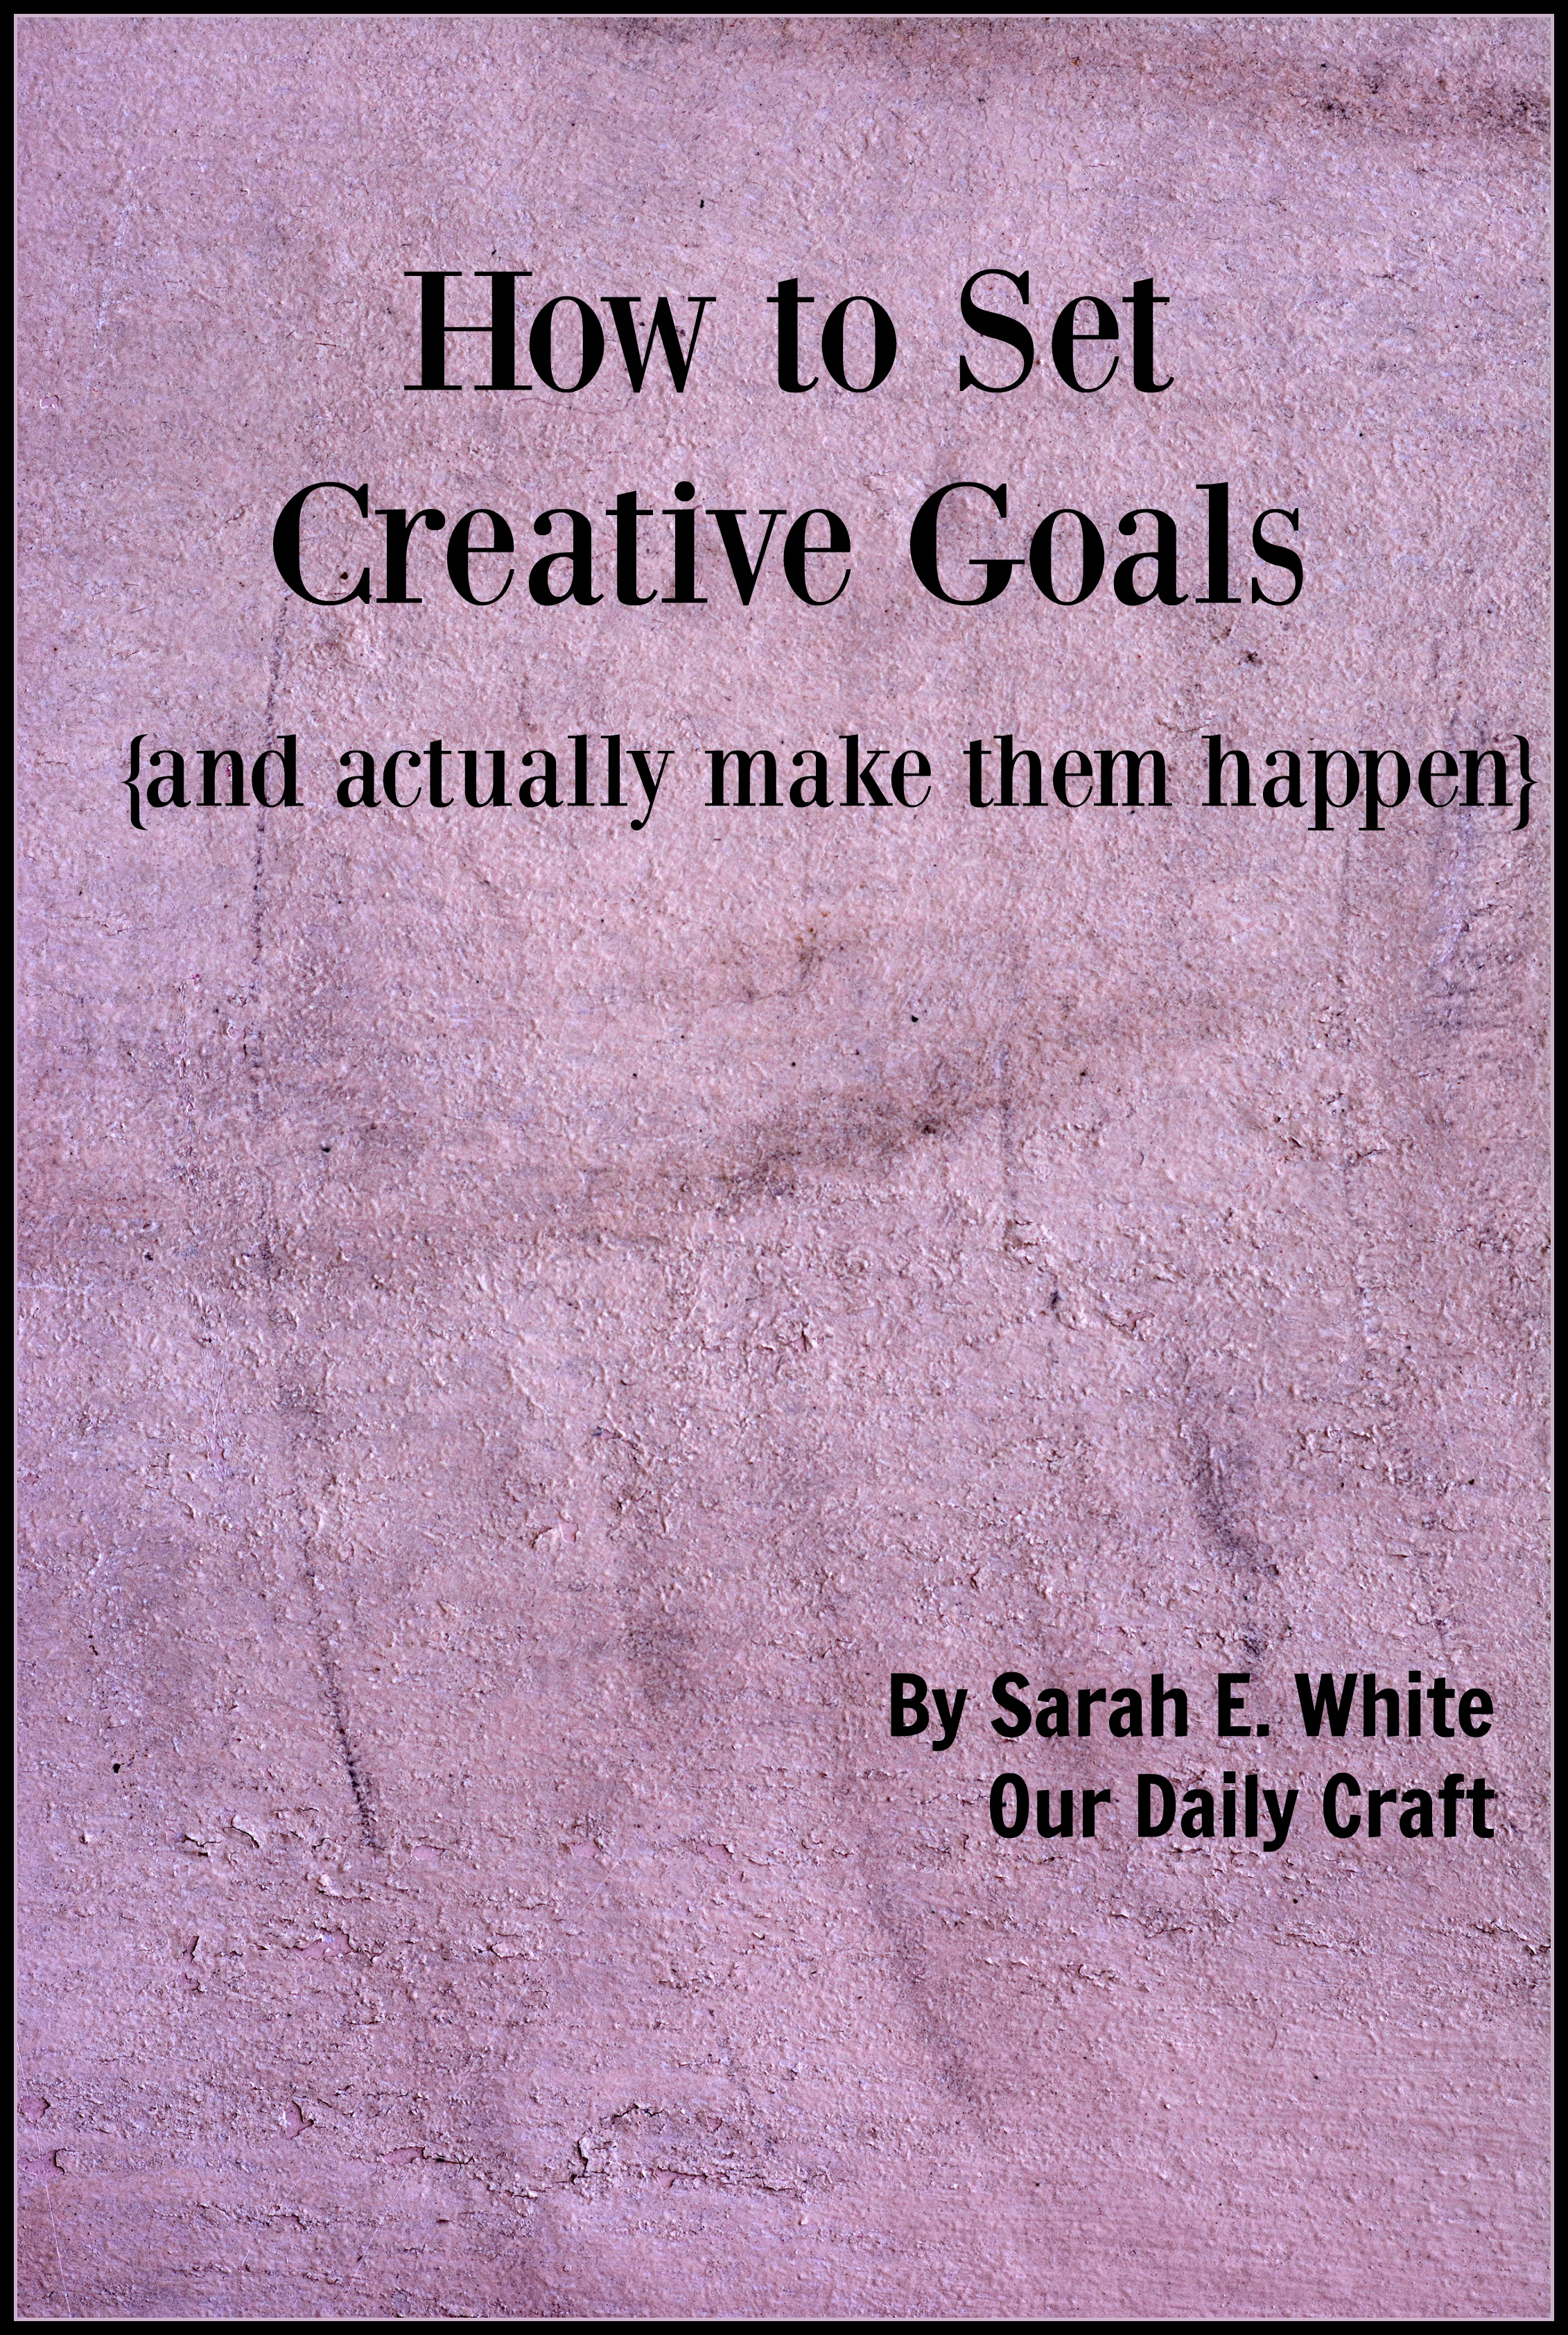 How to Set Creative Goals – And Actually Achieve Them